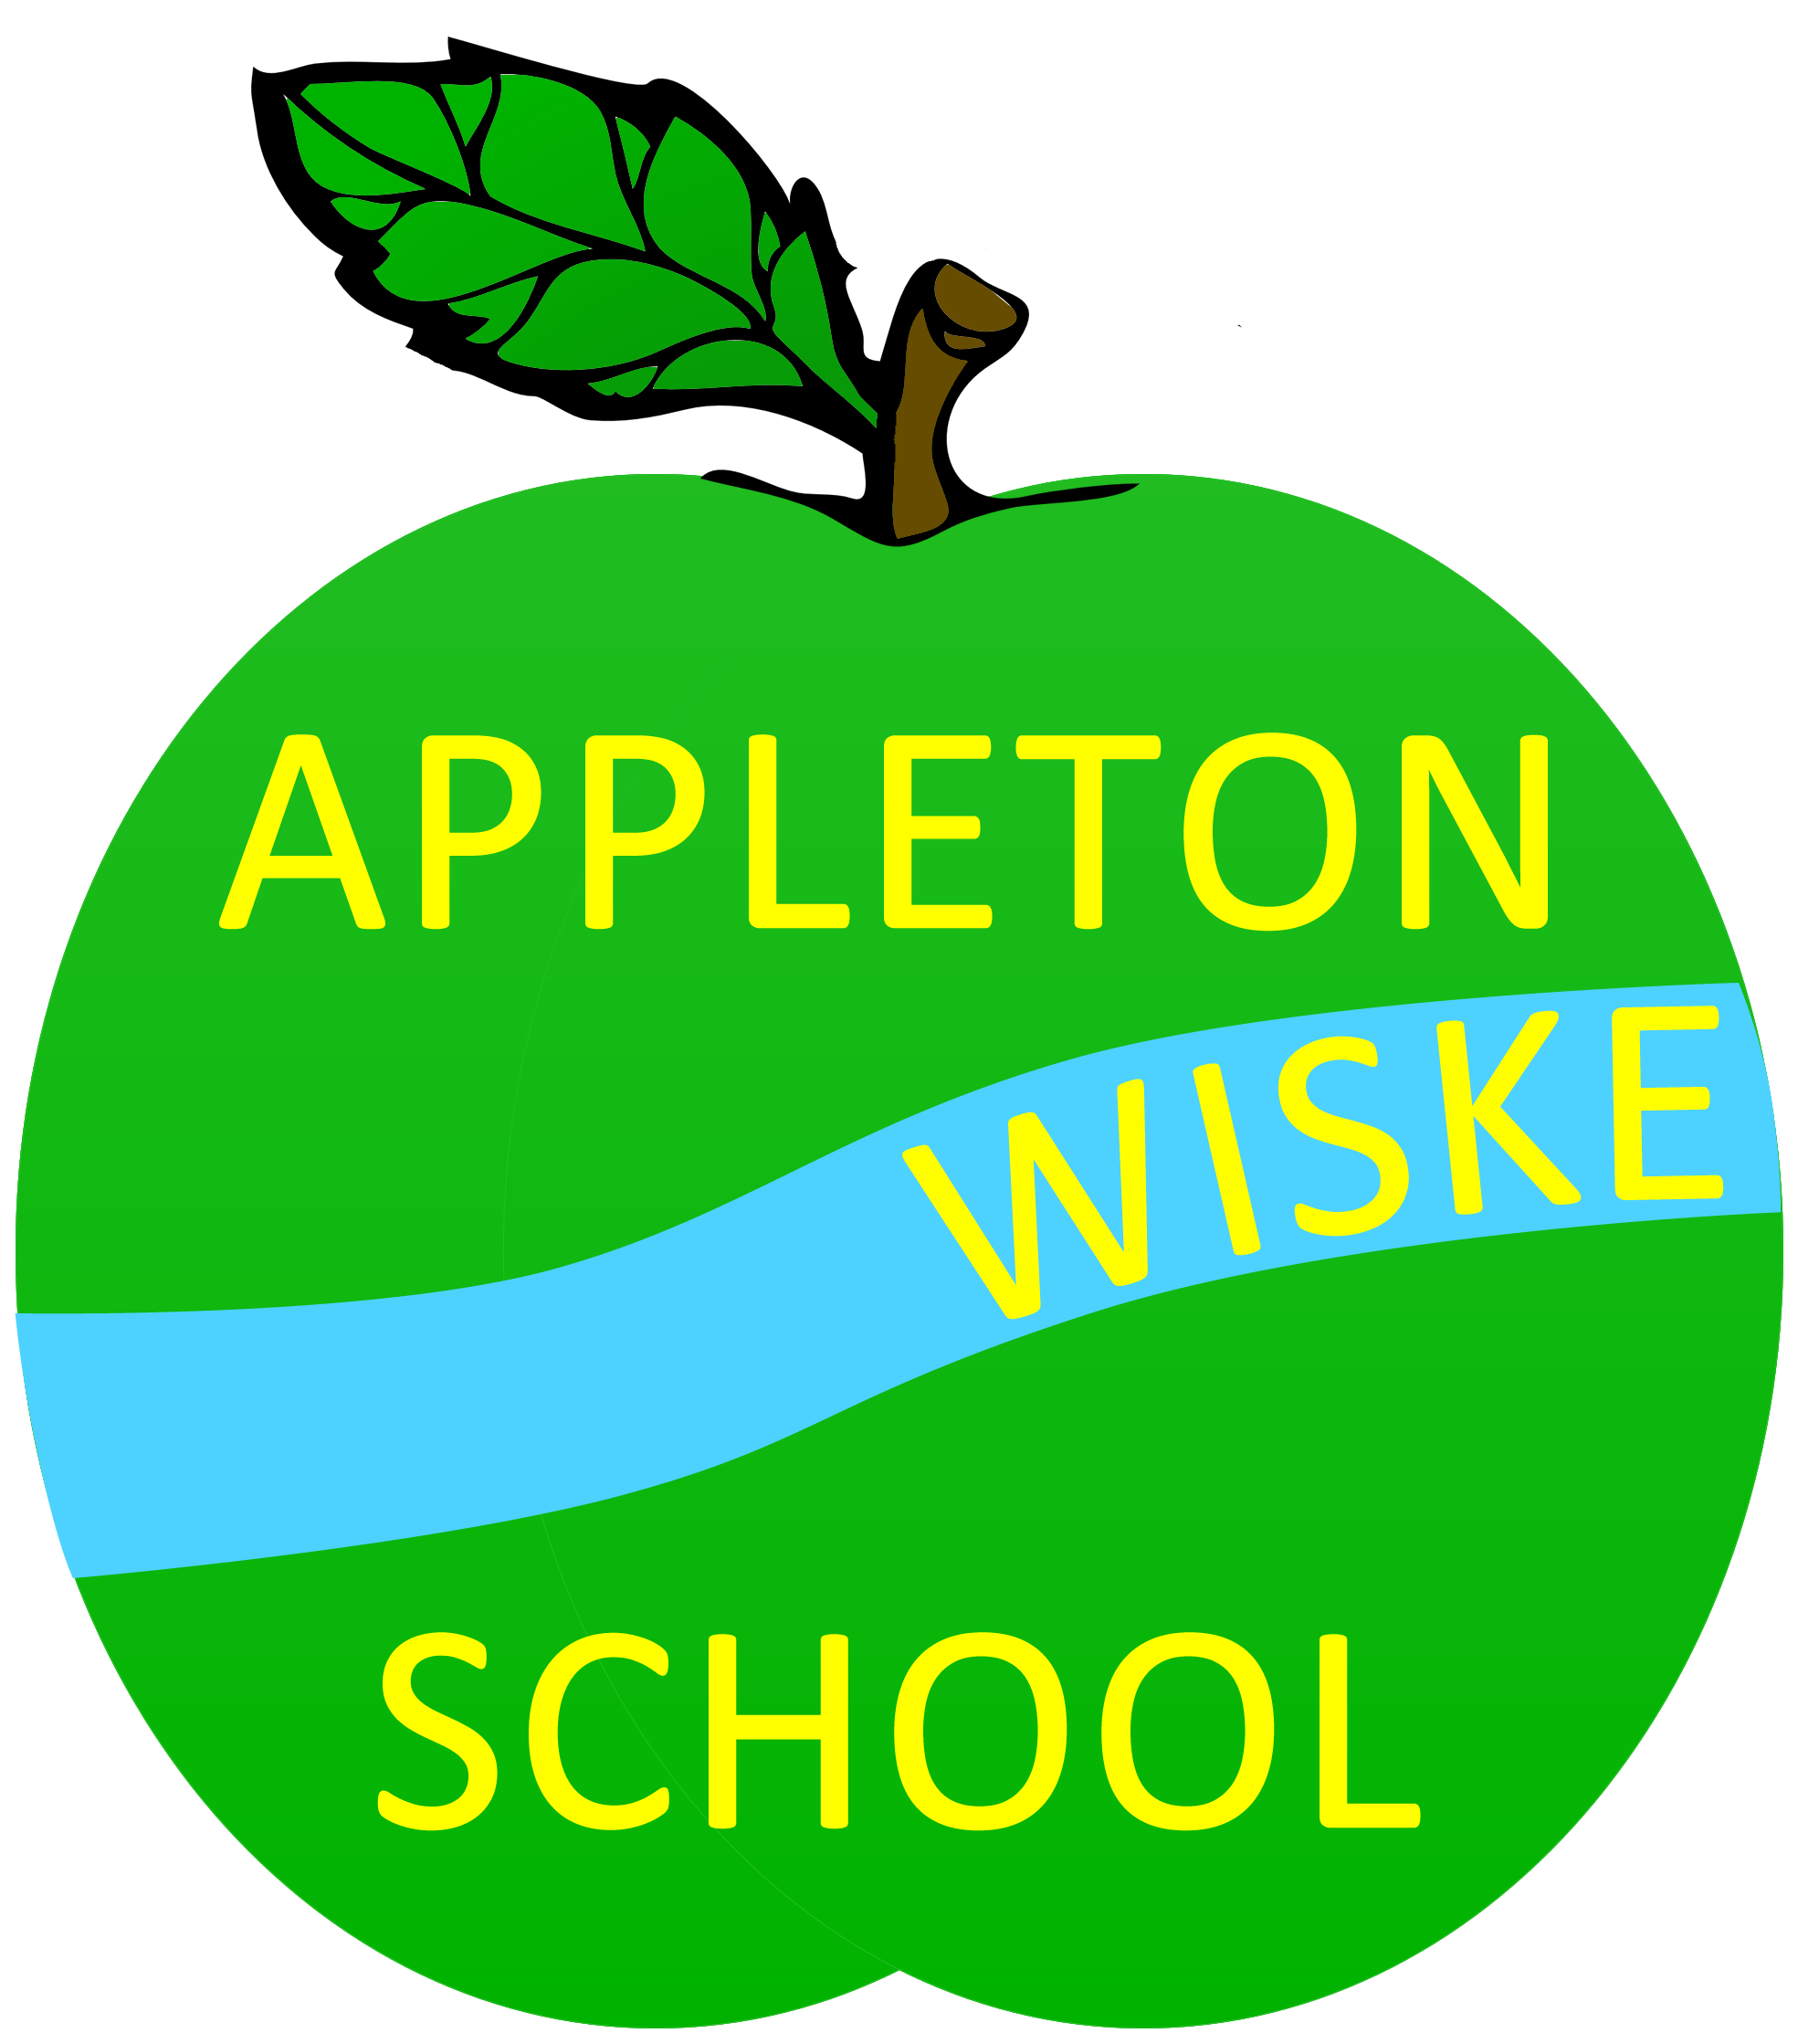 Appleton Wiske Primary School